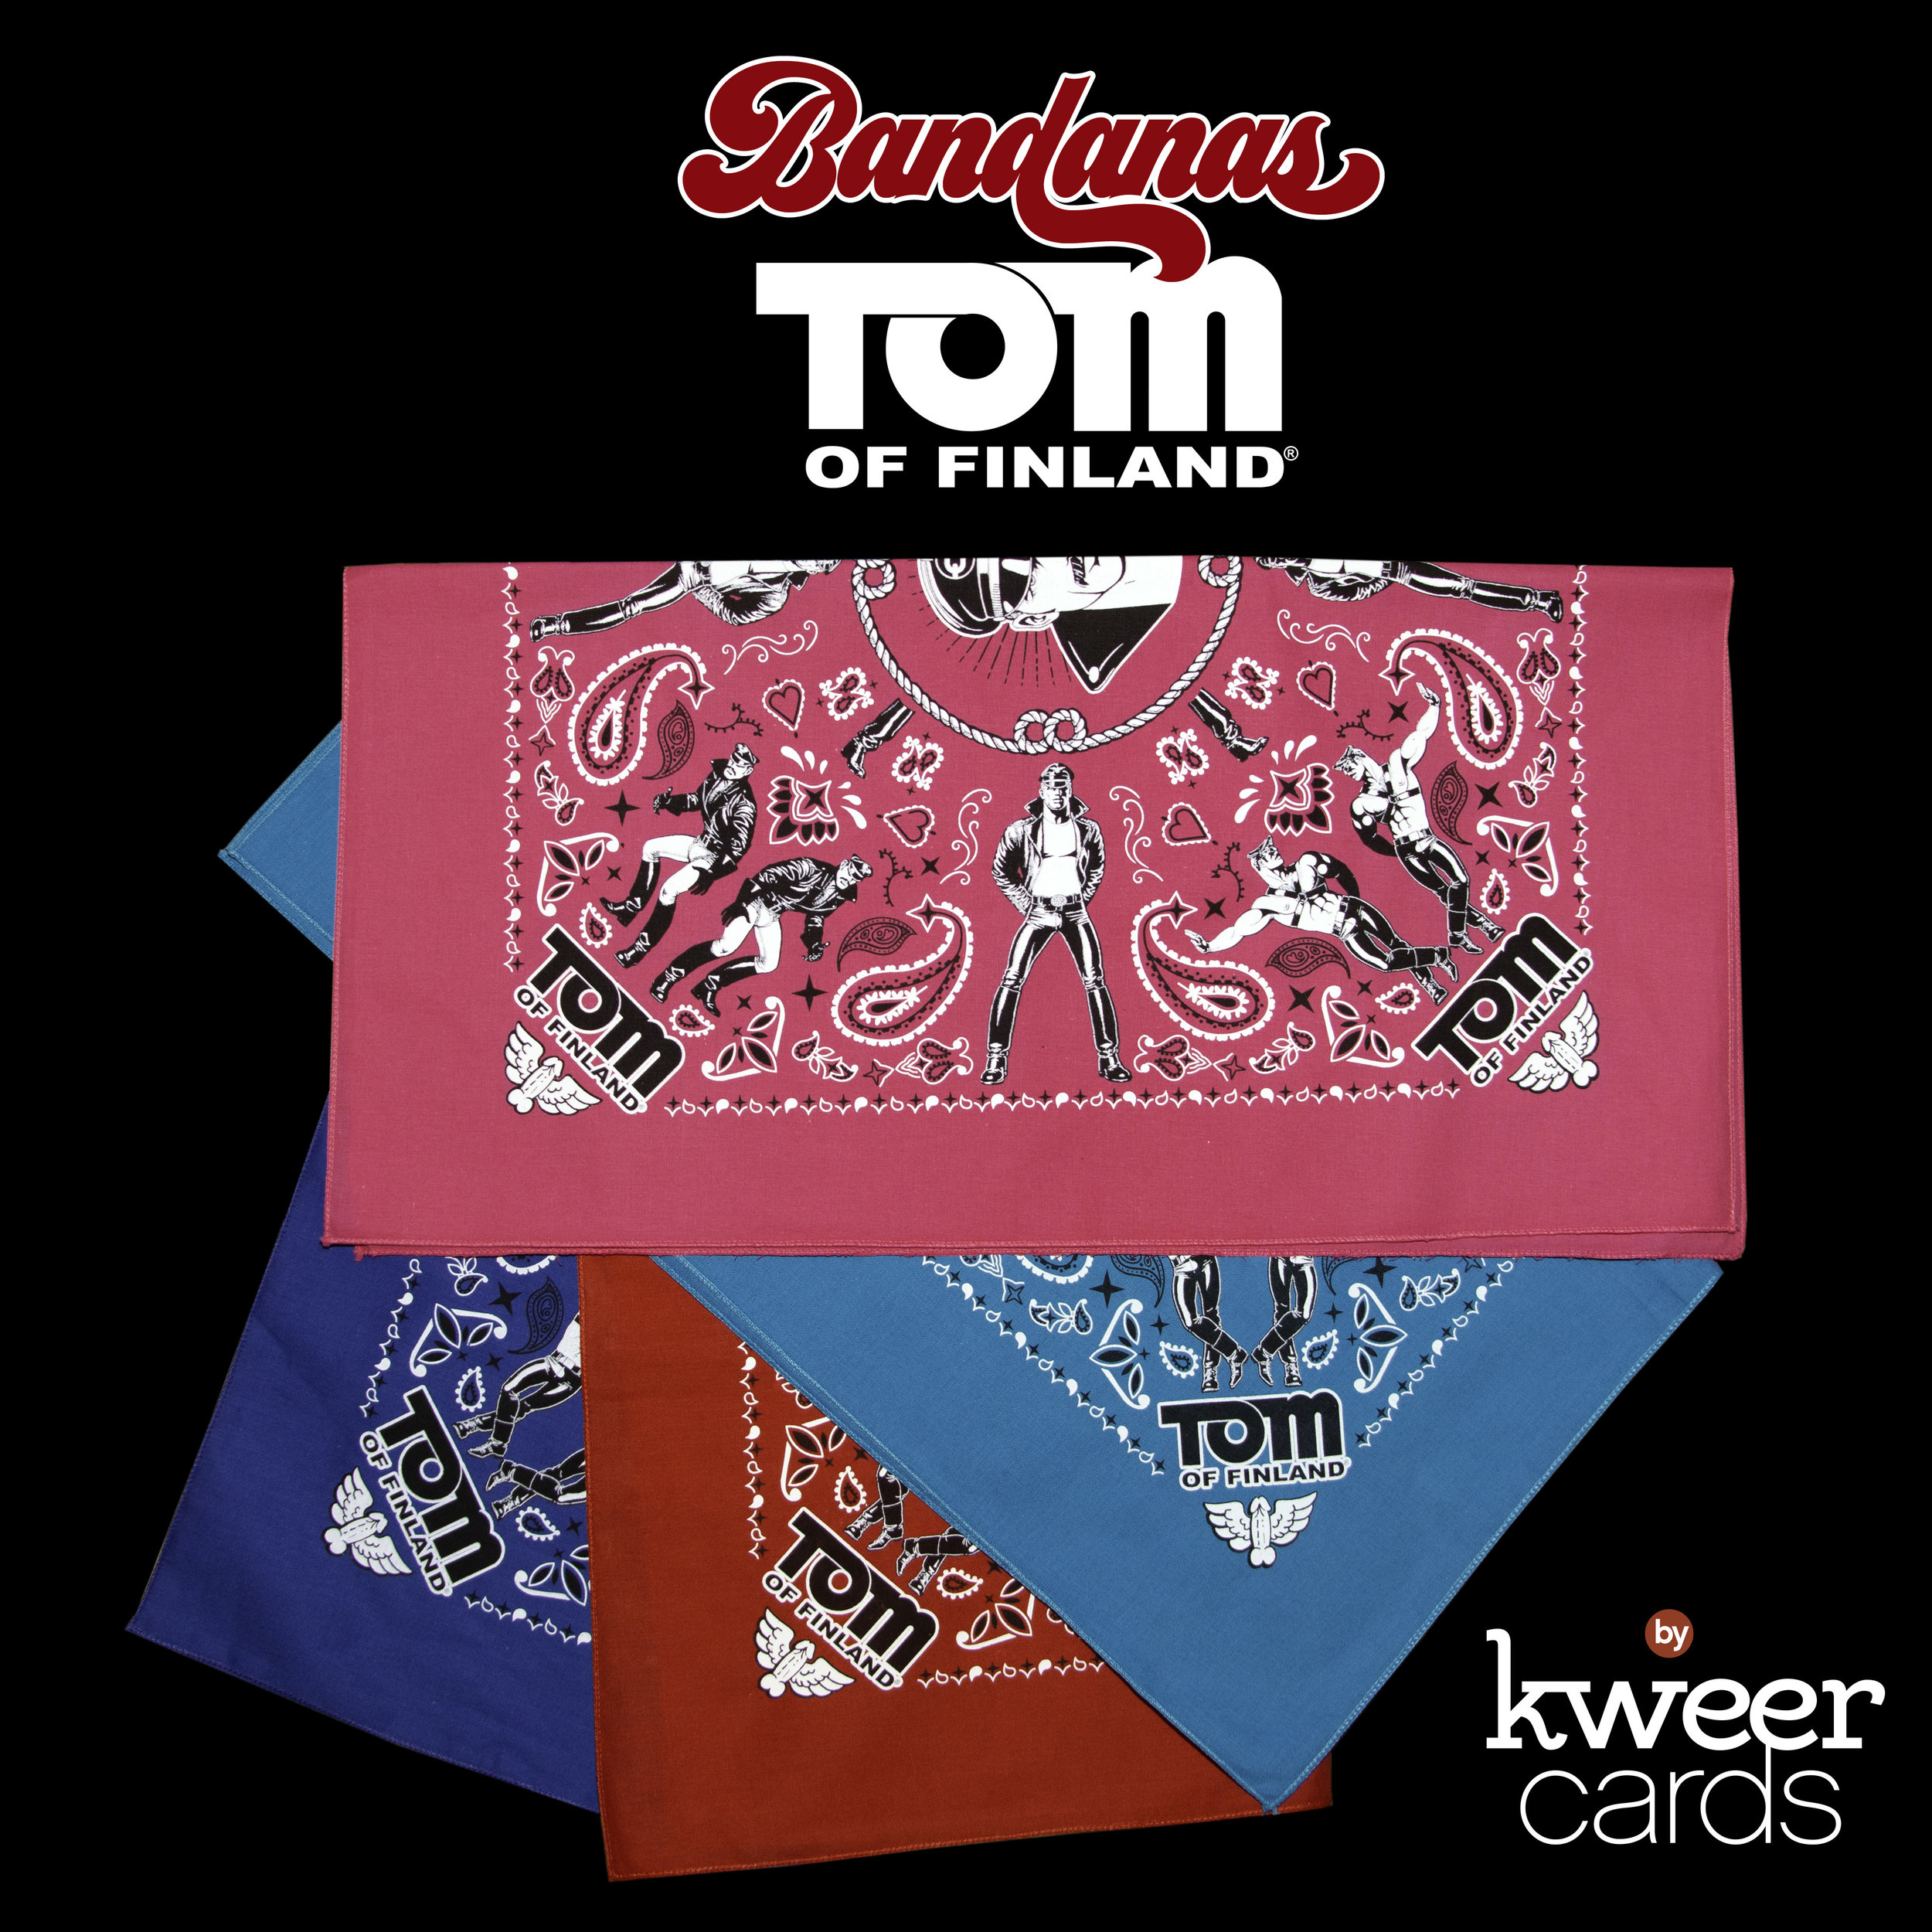 TOM OF FINLAND BANDANA KWEER.jpg